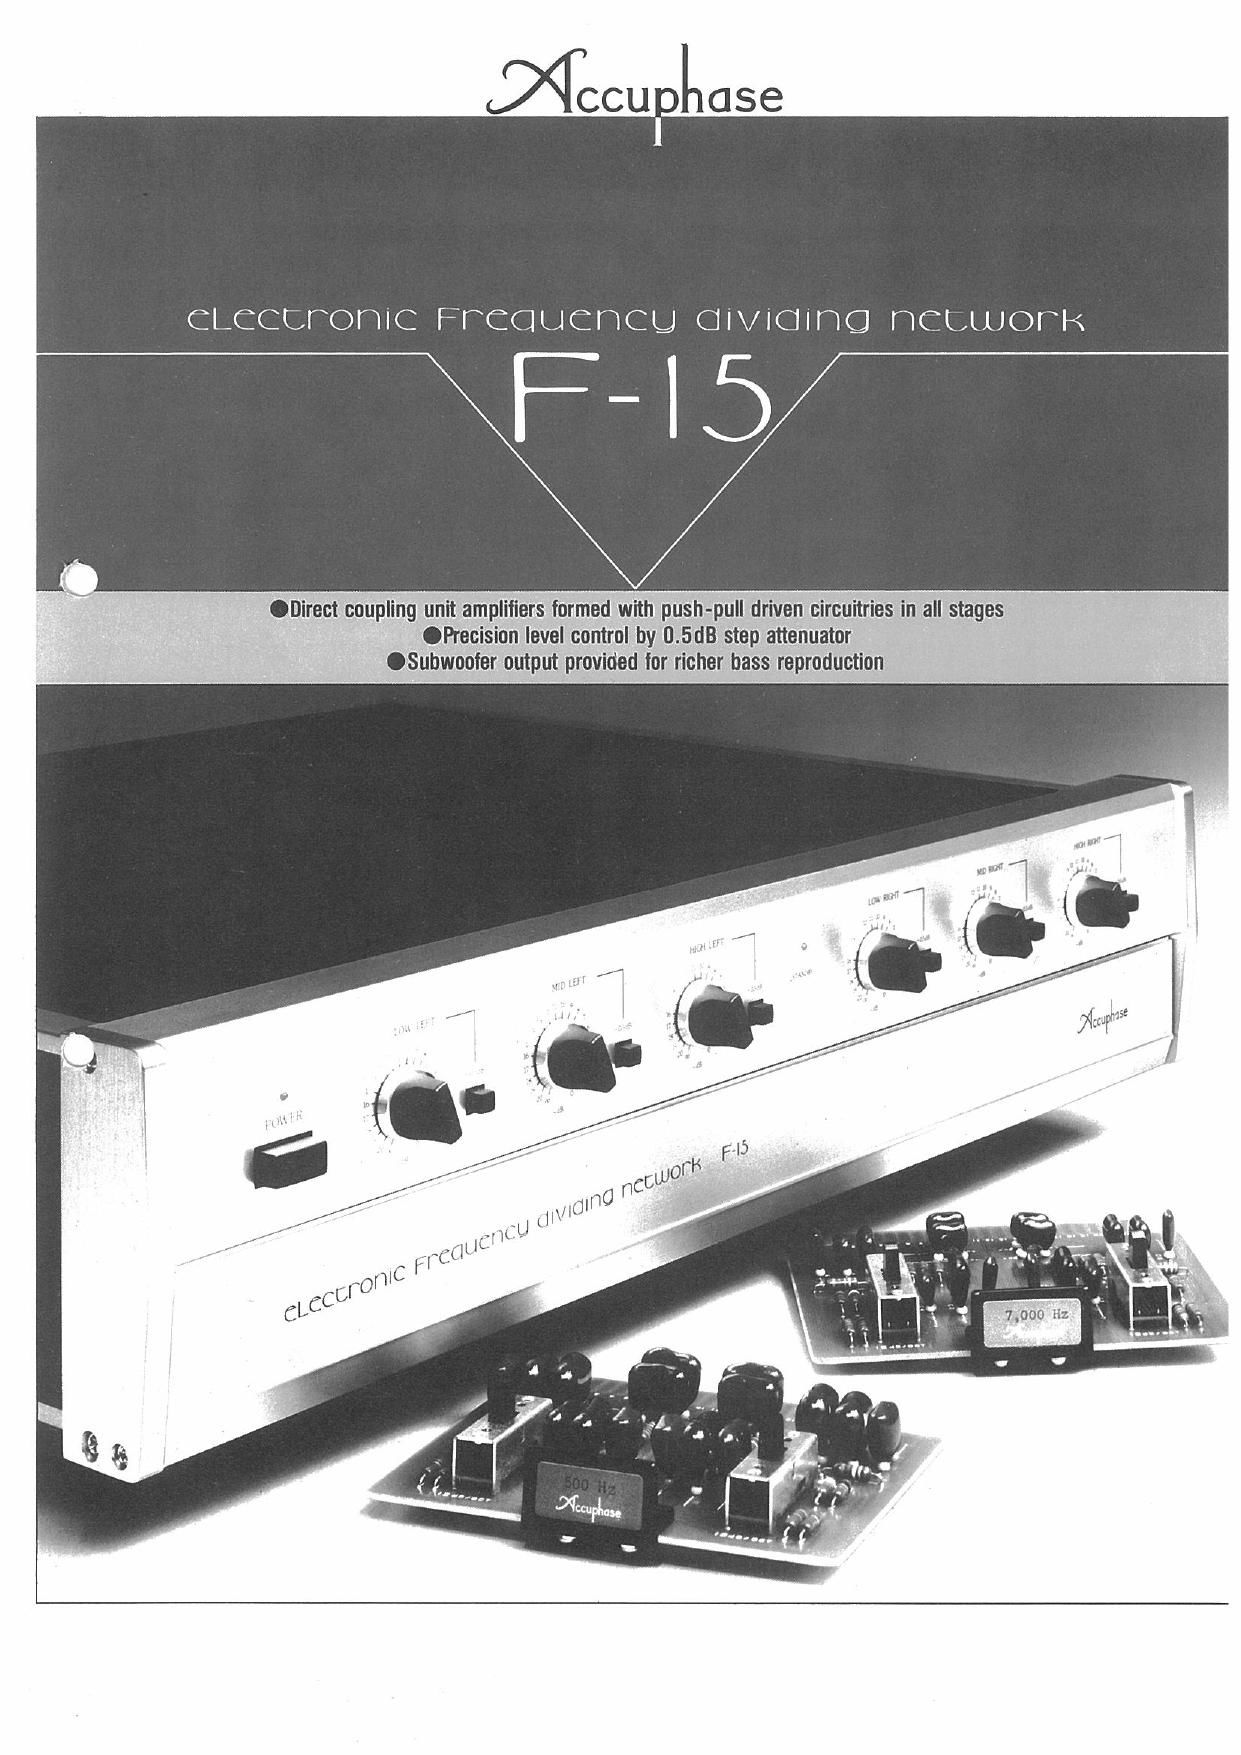 Accuphase F 15 Brochure